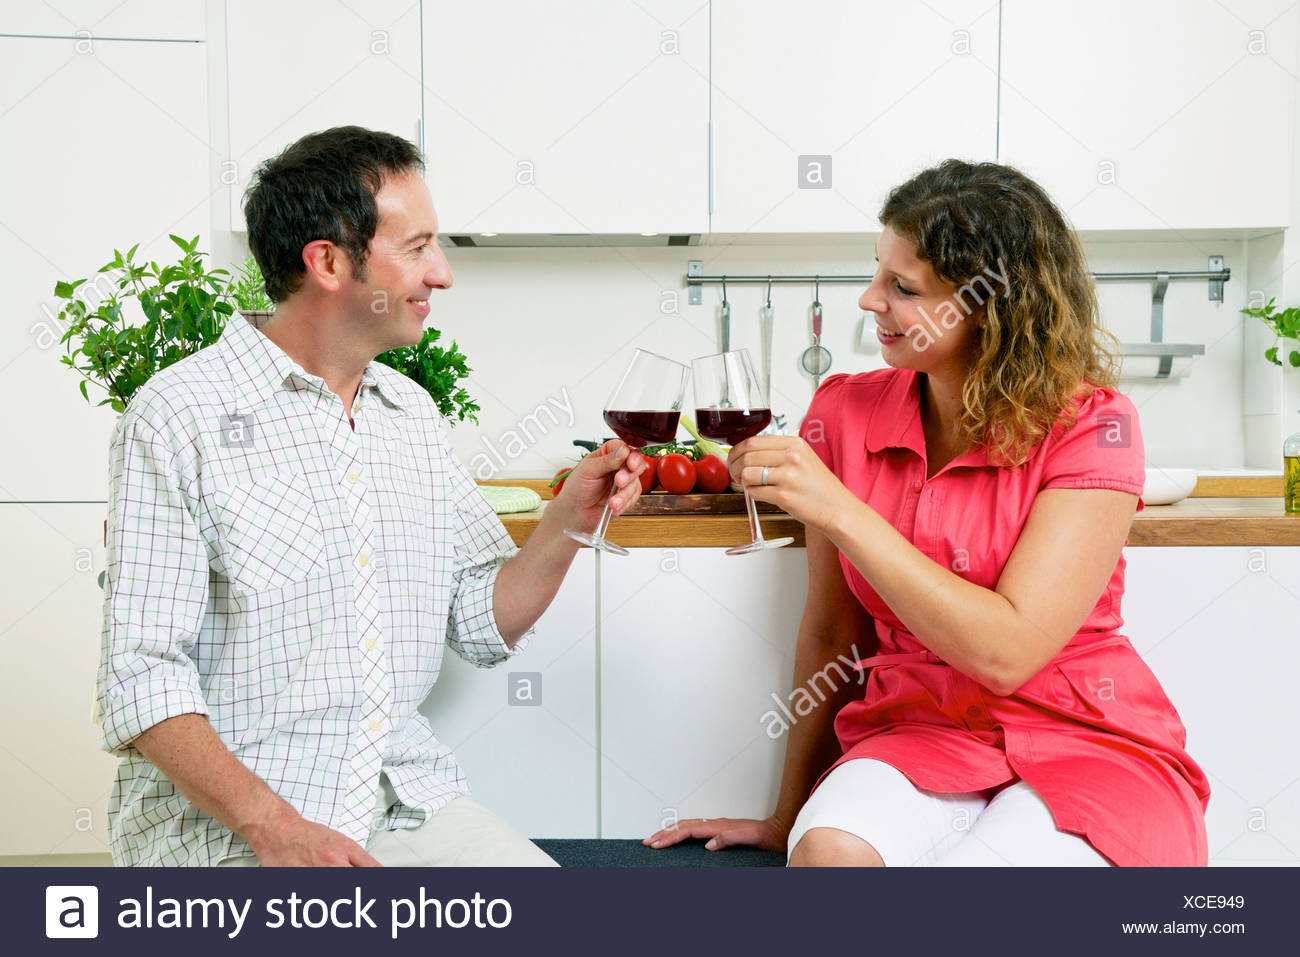 Couple In Kitchen Having Drinks - Stock Image